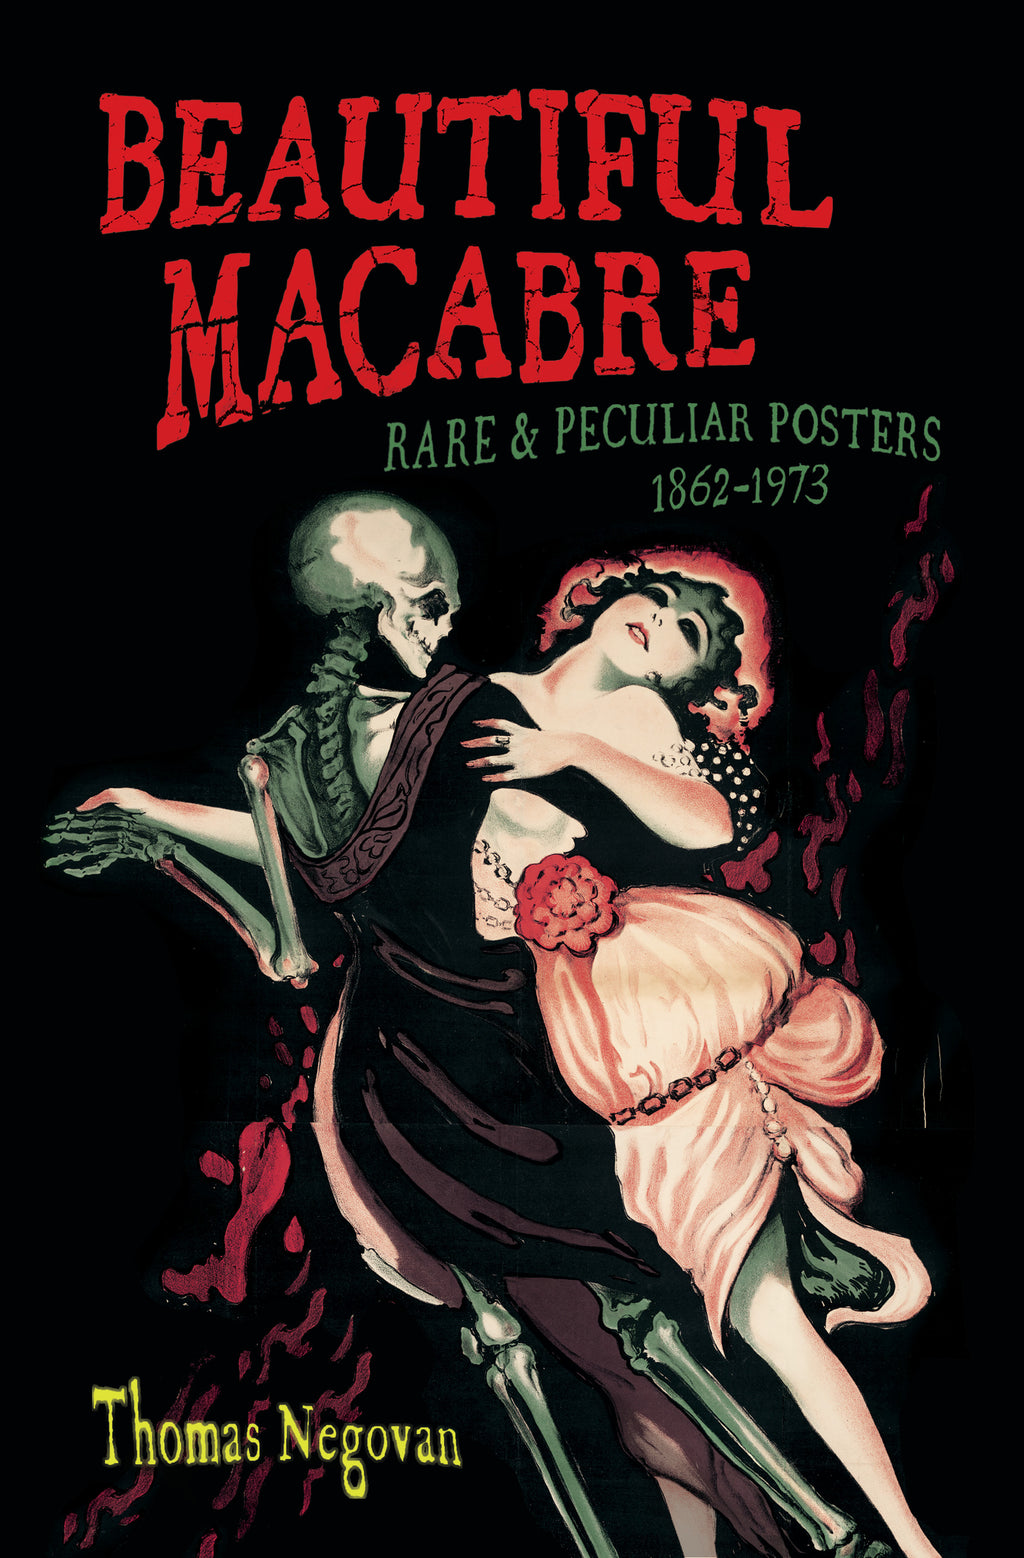 Beautiful Macabre Rare and Peculiar Posters 1862 - 1973 Thomas Negovan Art History Century Guild